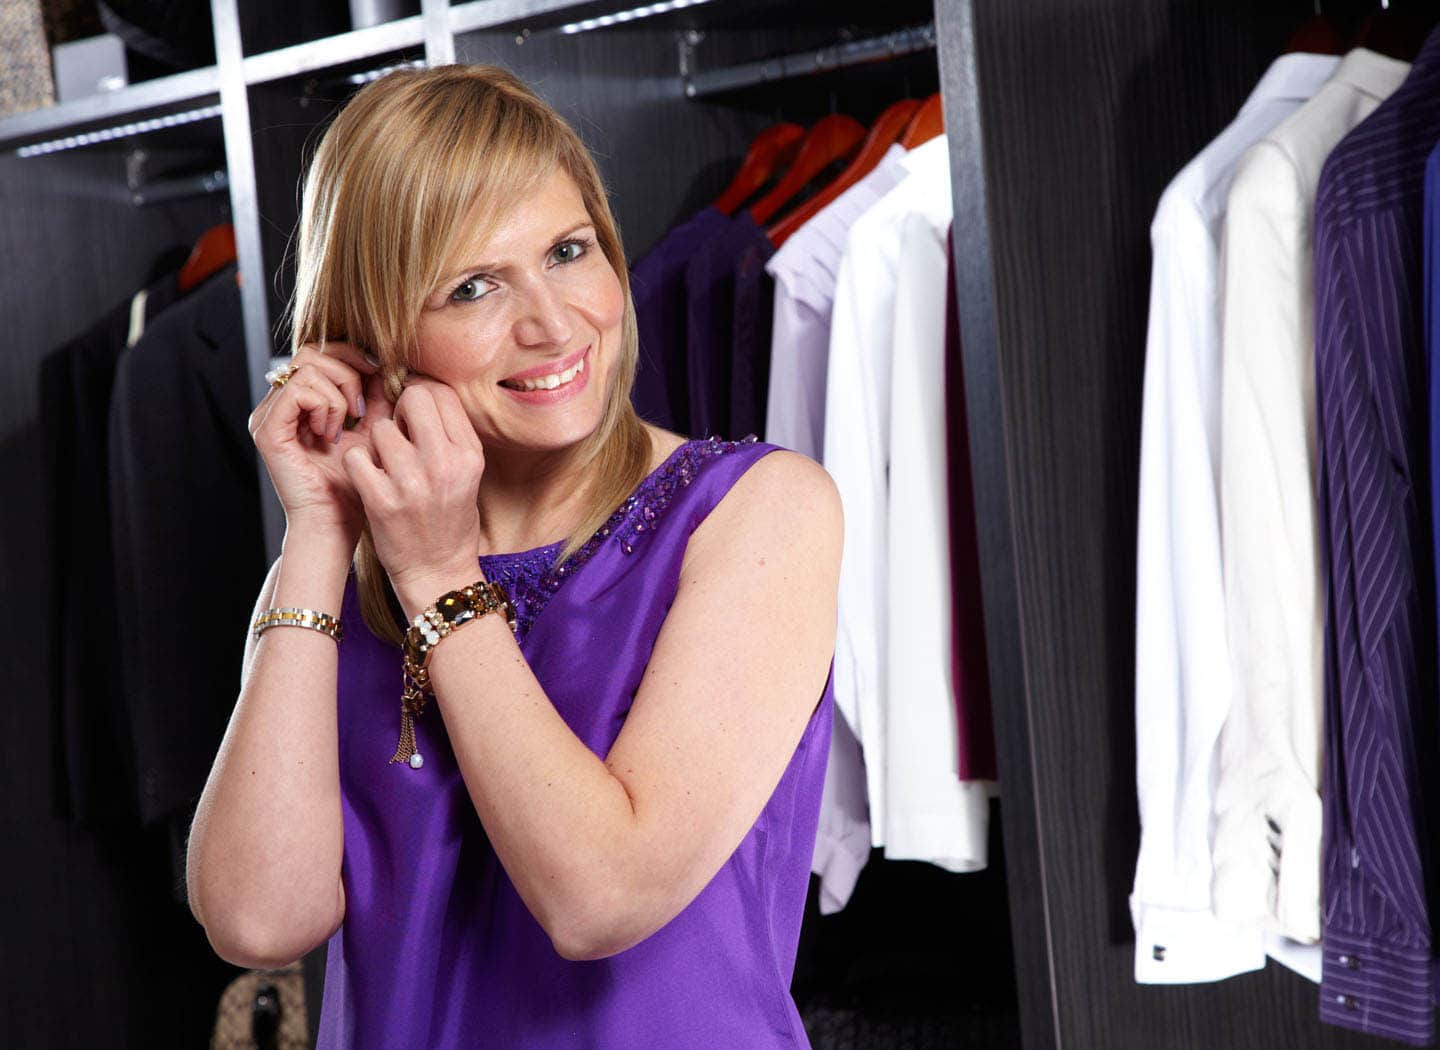 Woman putting jewellery on in made to measure dressing room